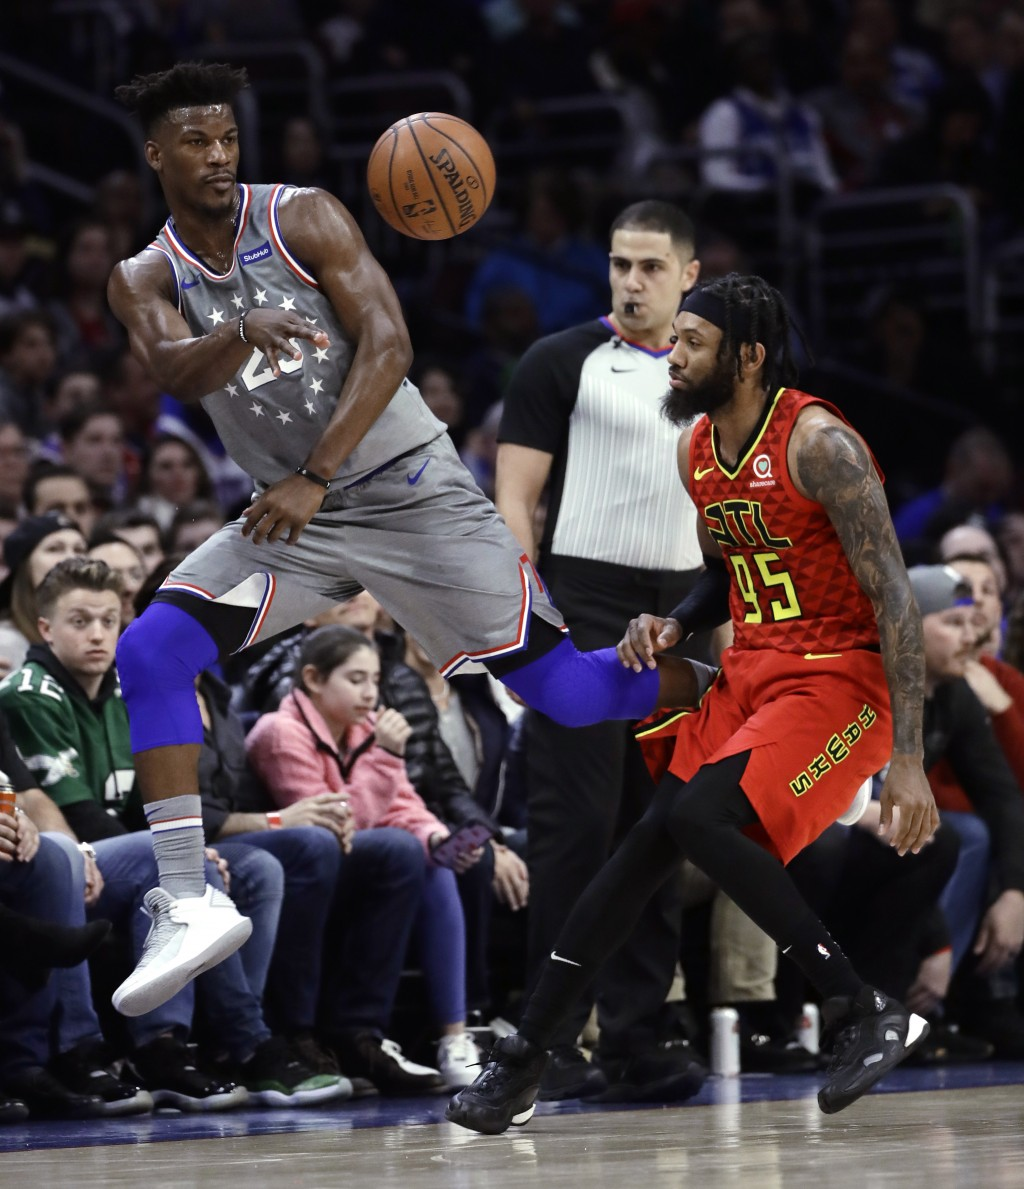 Philadelphia 76ers' Jimmy Butler, left, passes the ball as Atlanta Hawks' DeAndre' Bembry defends during the first half of an NBA basketball game Frid